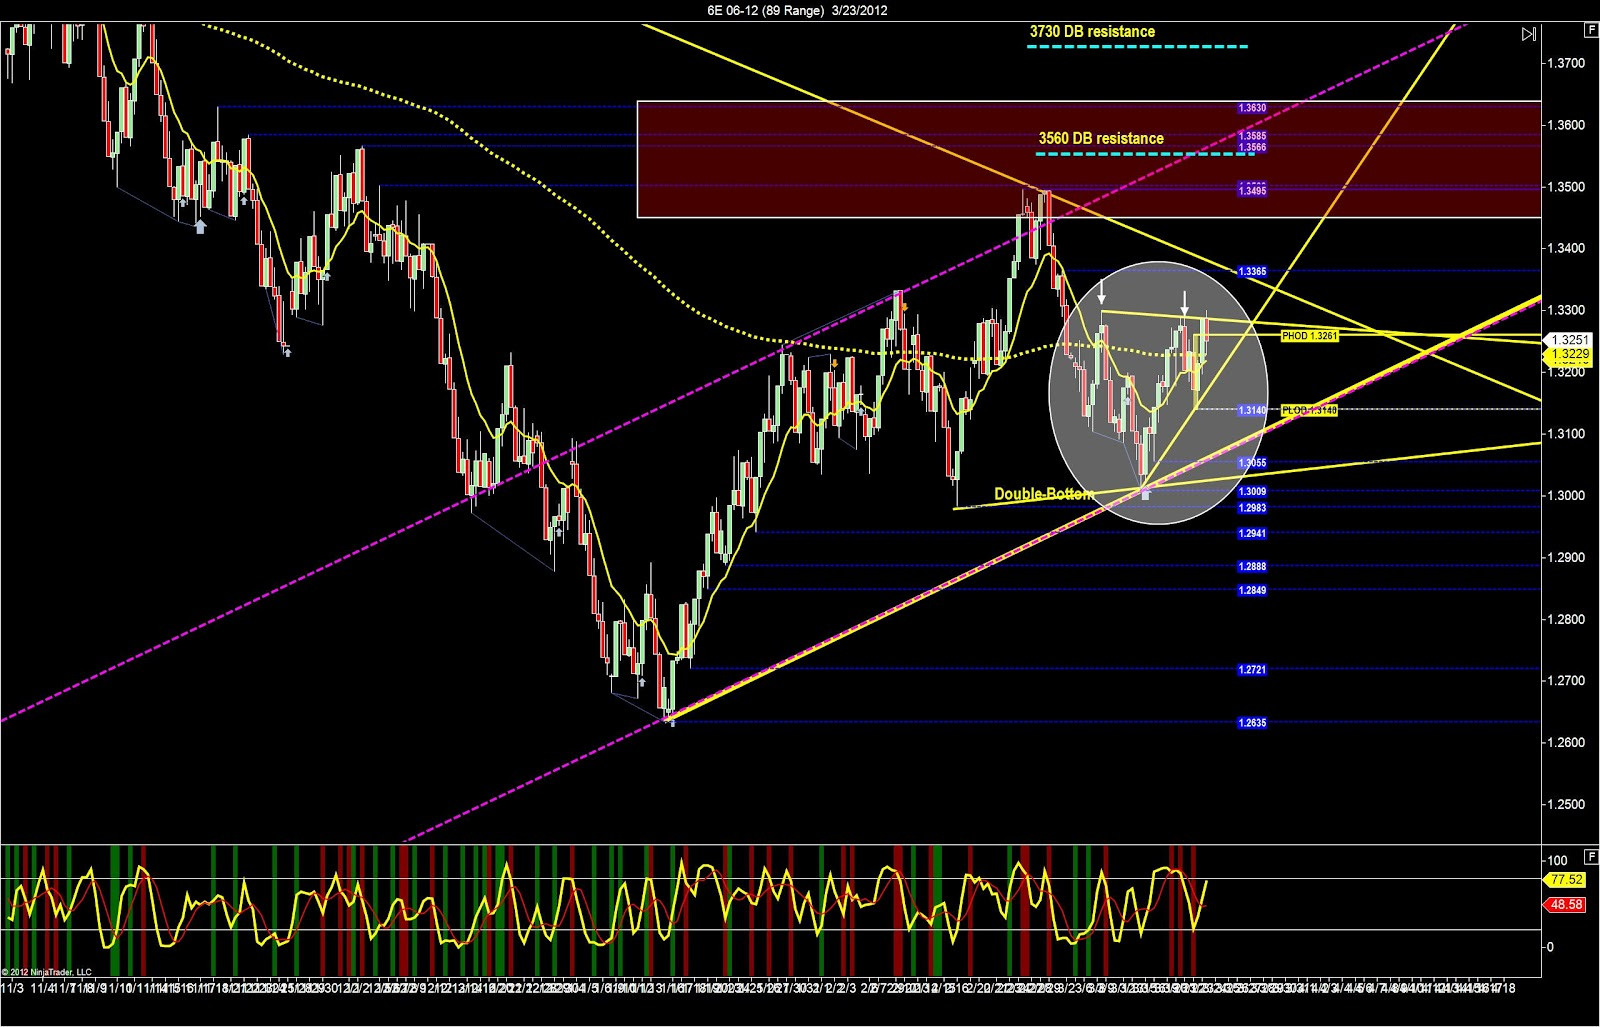 day trading strategy uses the middle of trading ranges as a